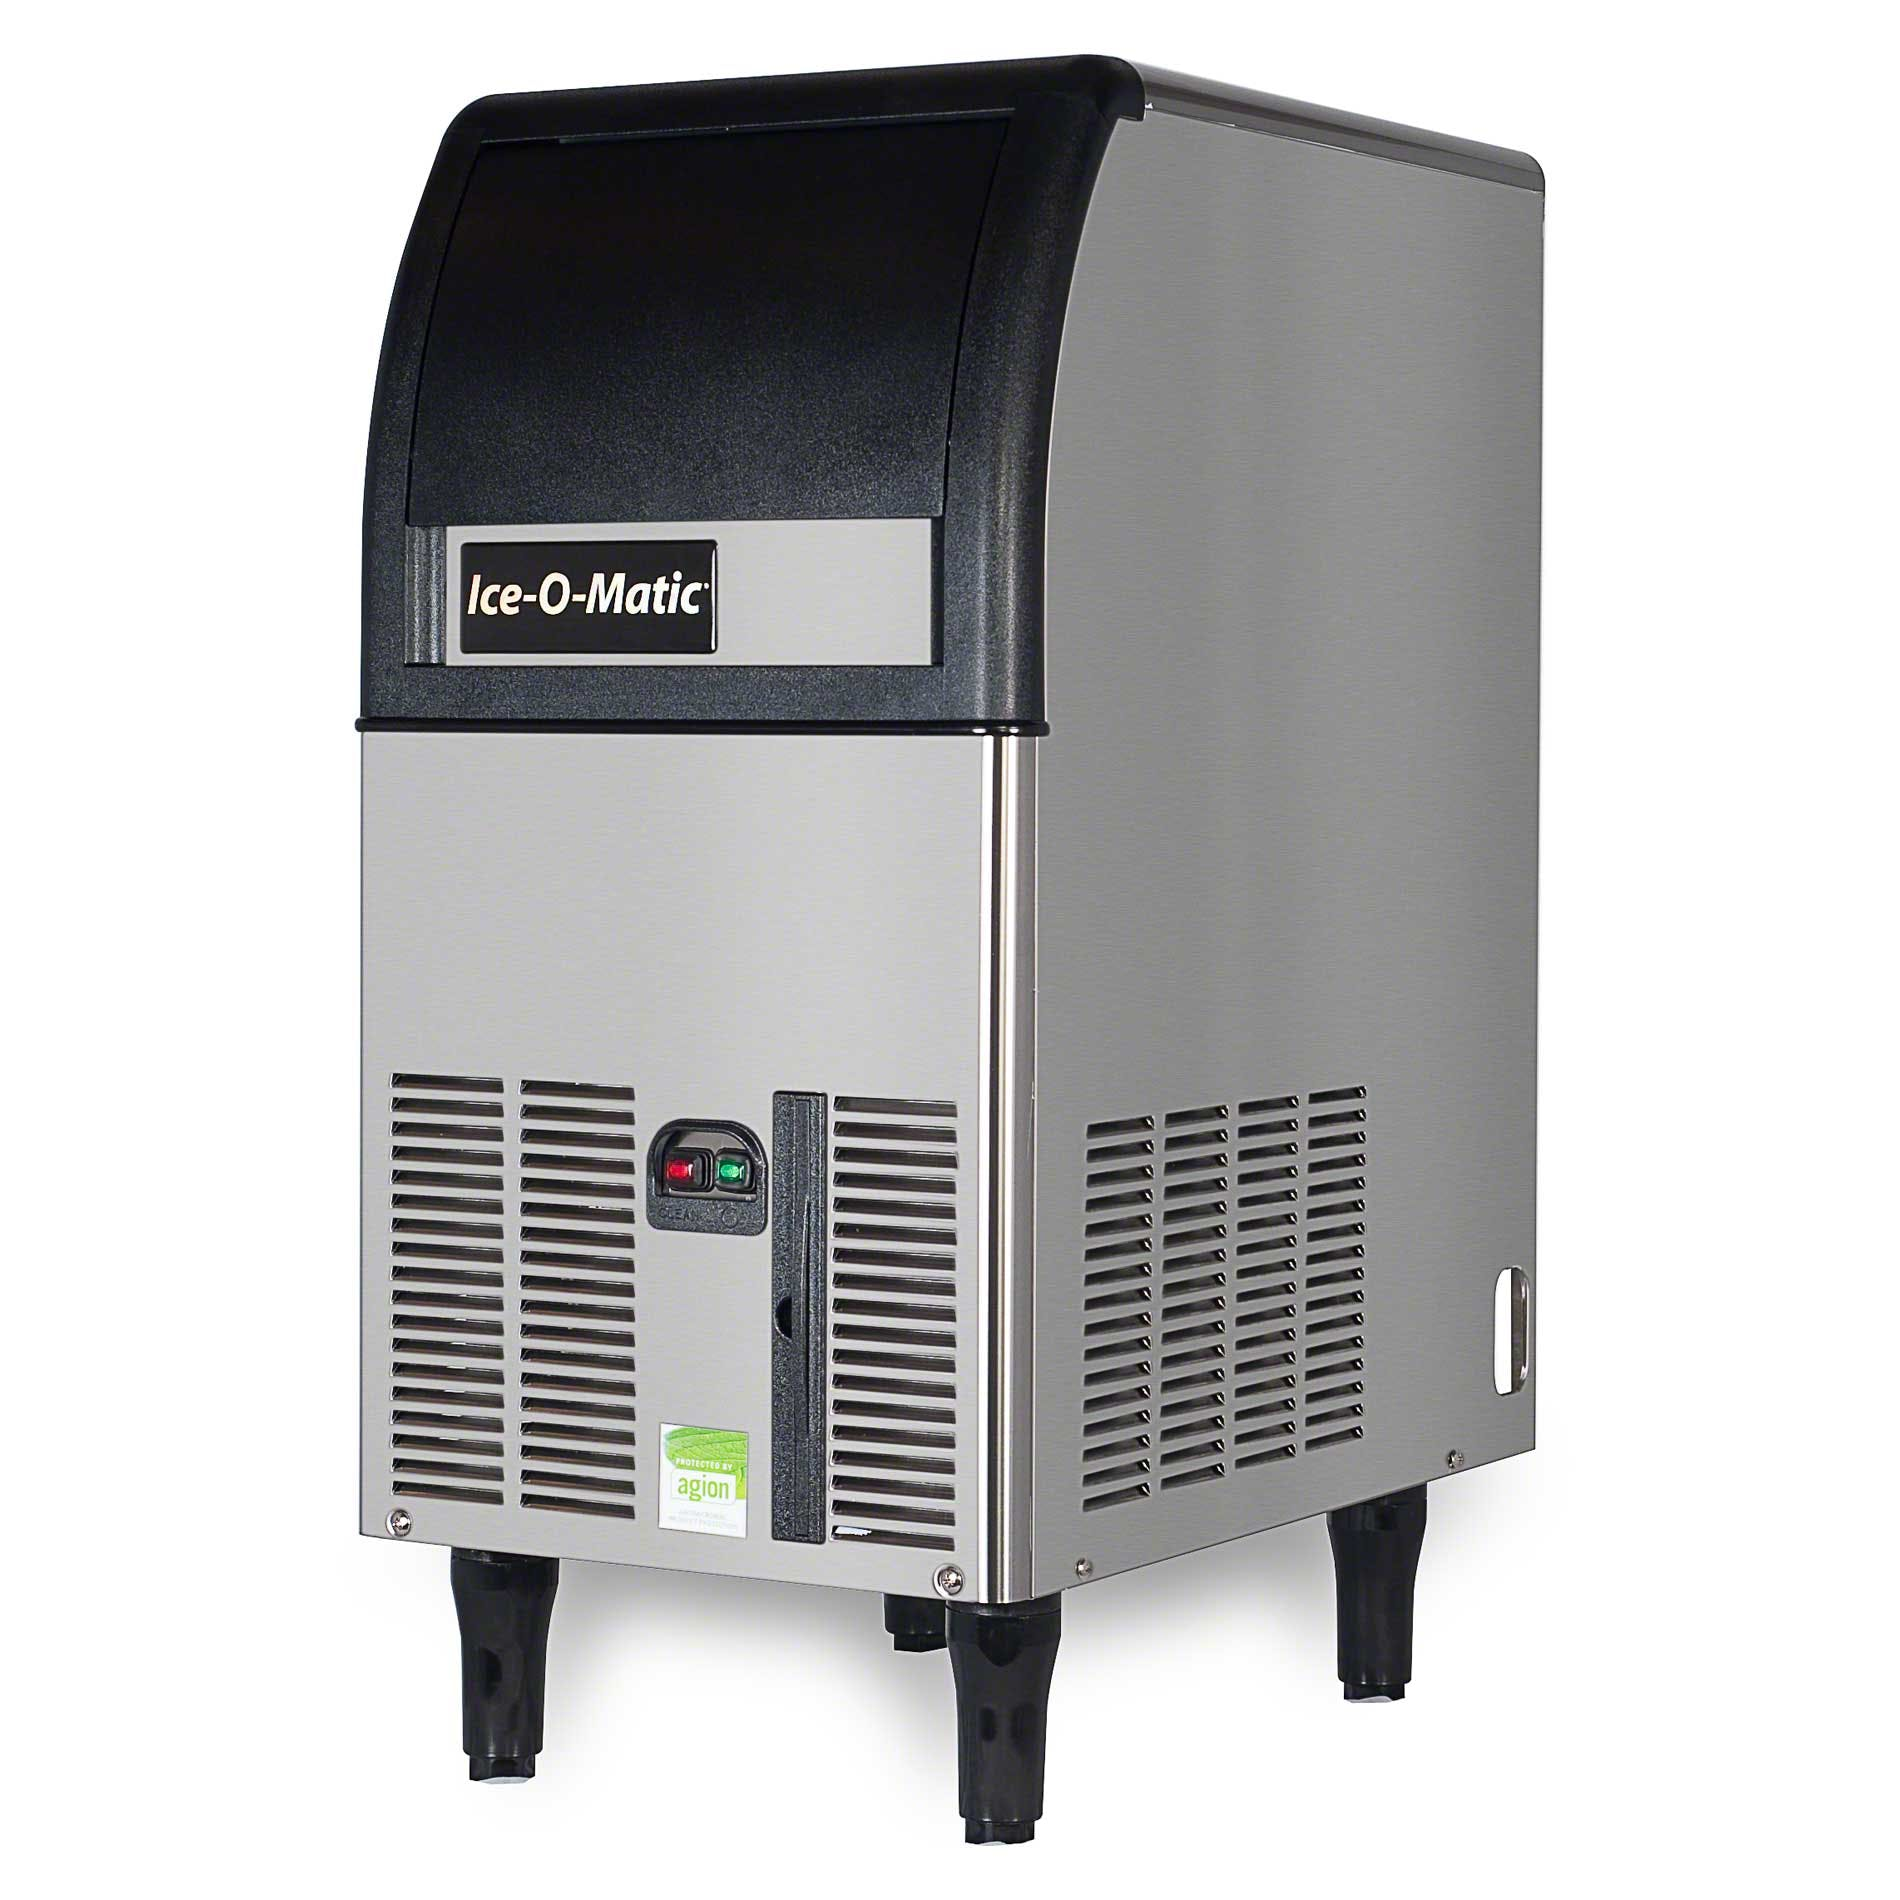 Ice-O-Matic - ICEU070 84 lb Self-Contained Cube Ice Machine Ice machine sold by Food Service Warehouse